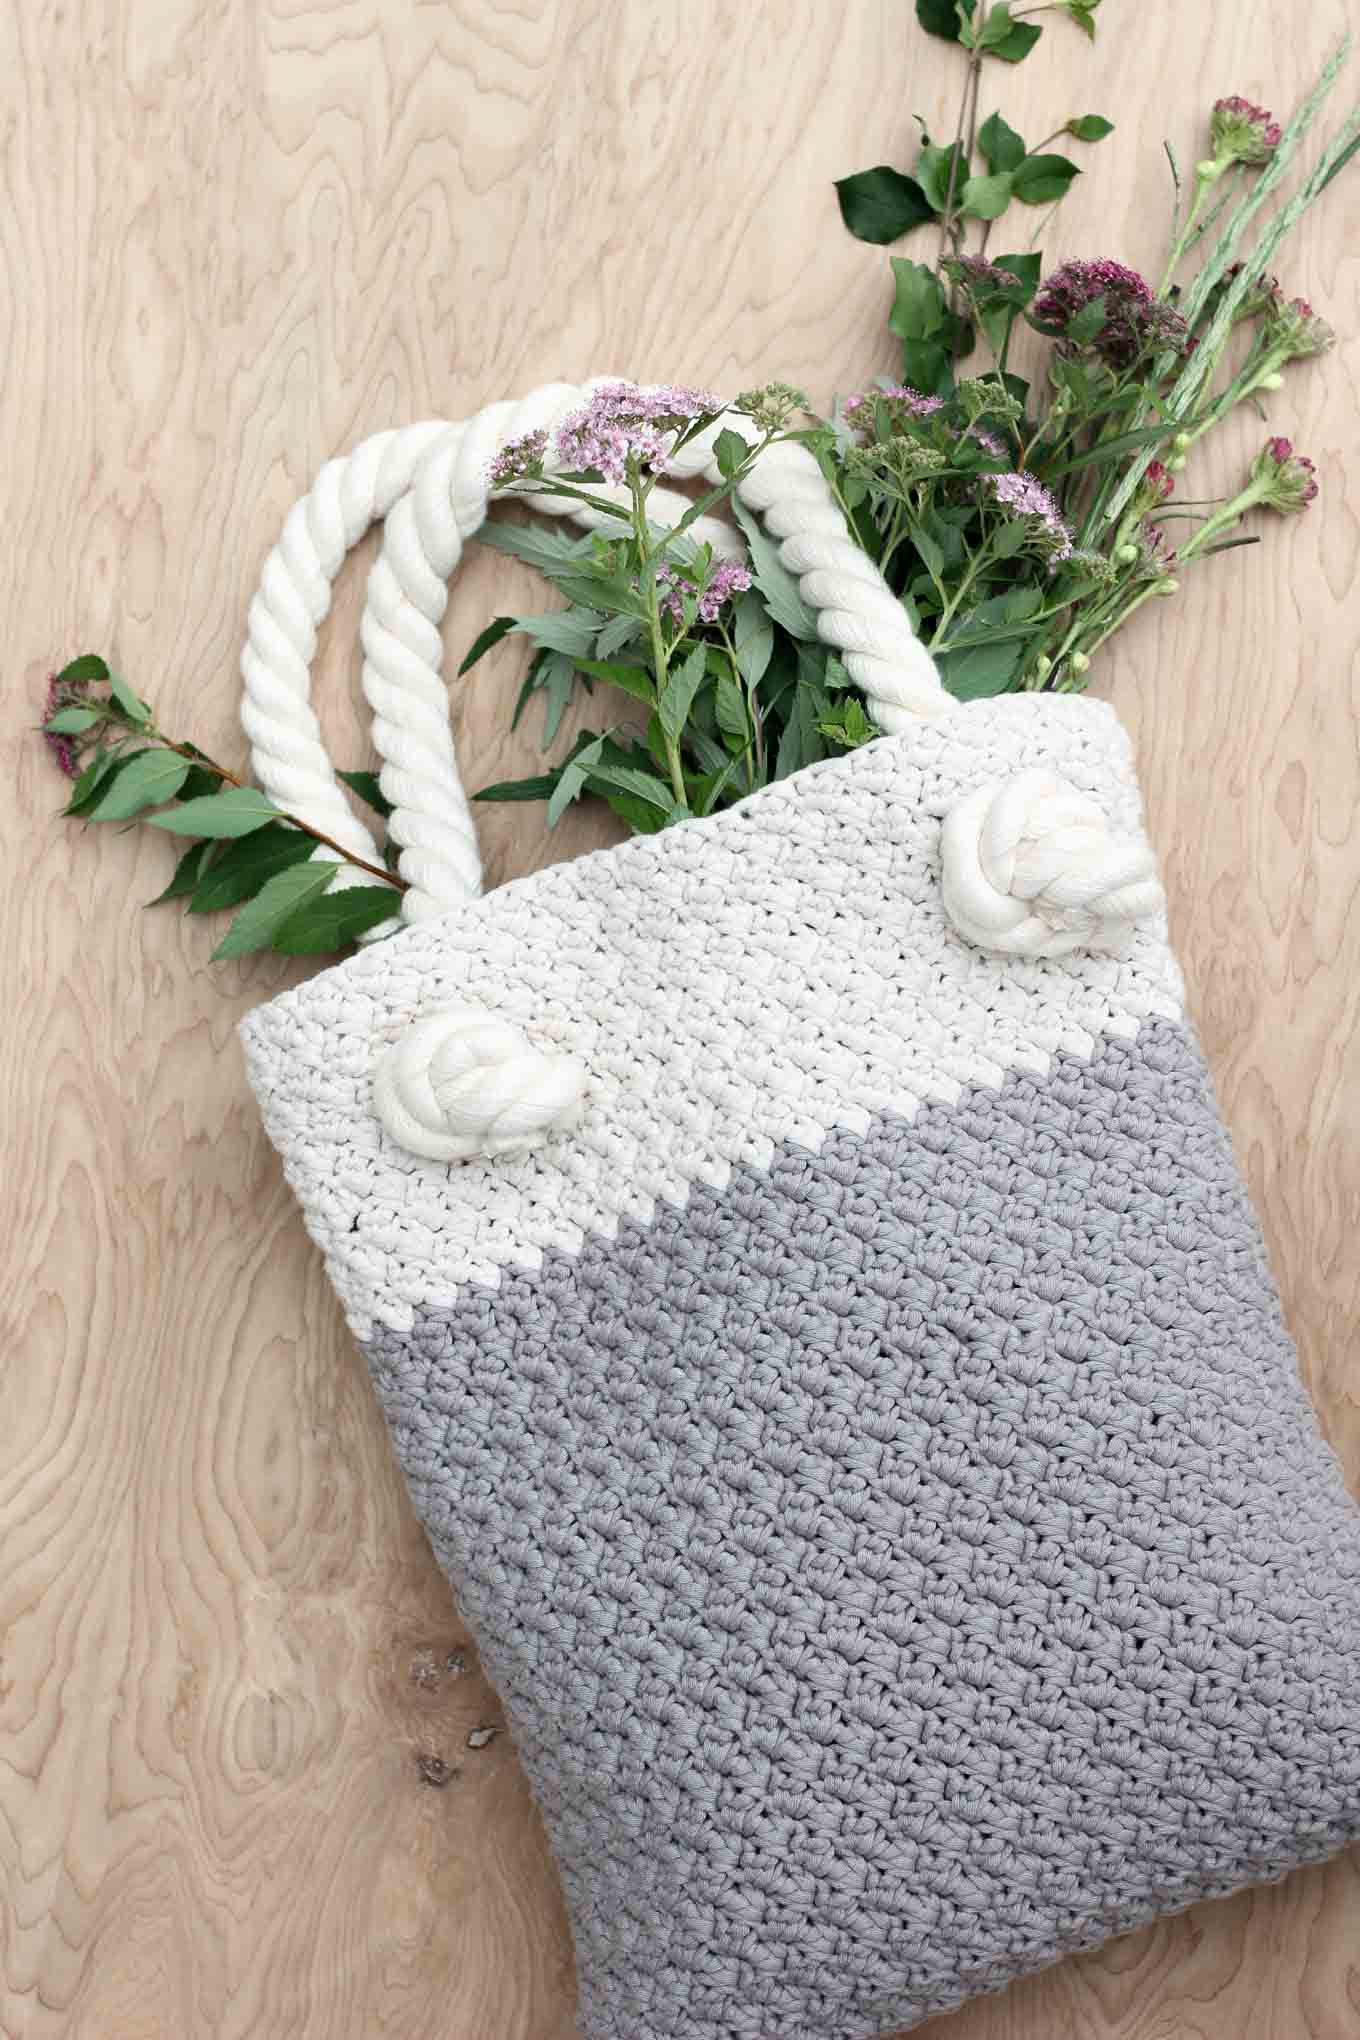 Free Crochet Bag Pattern Instruction for Beginners at Easy Level ... | 2040x1360